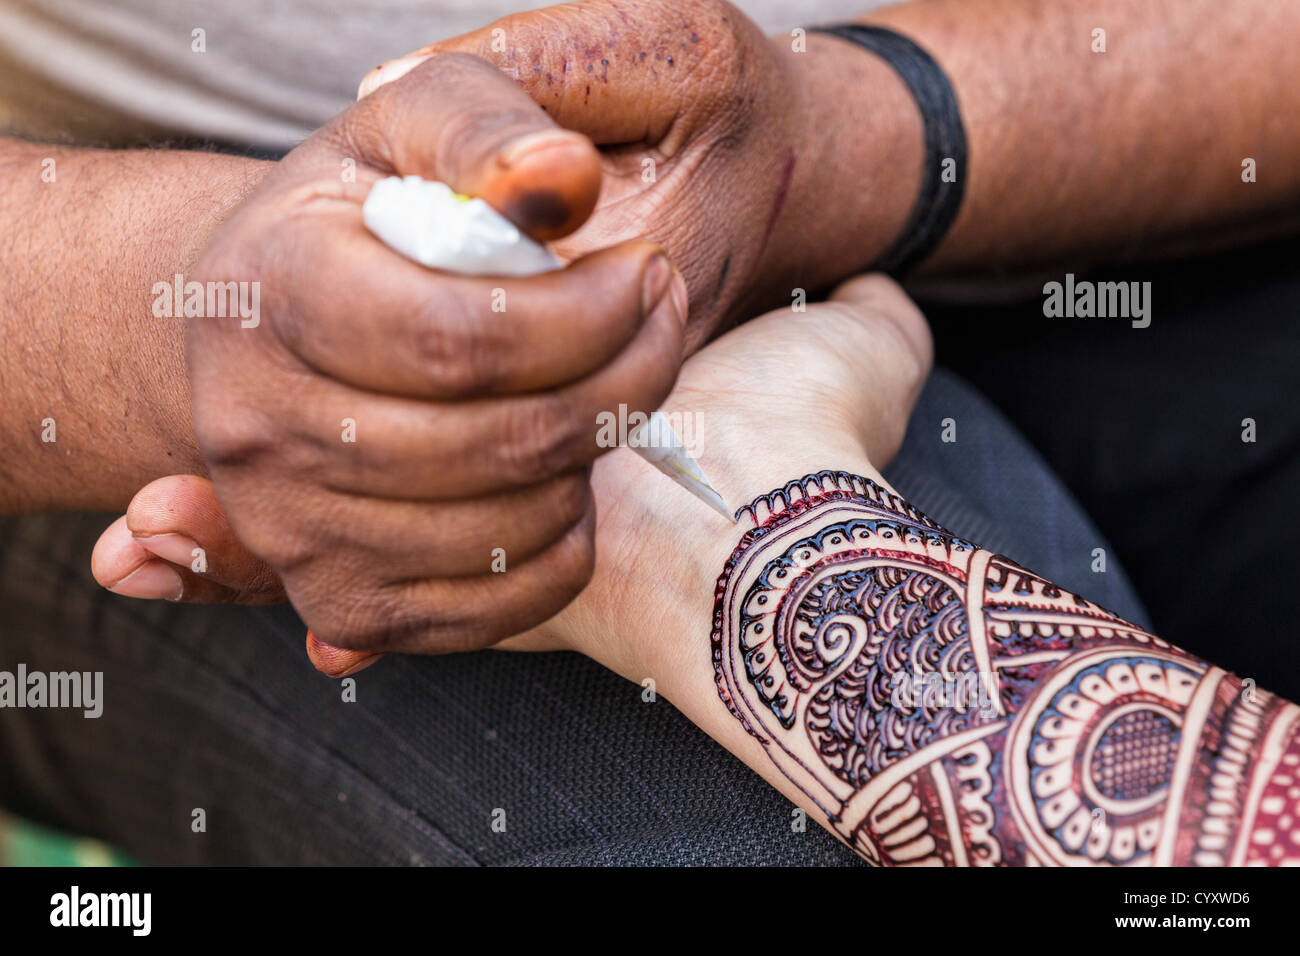 India Uttarakhand Rishikesh Man Drawing Henna Tattoo On Woman